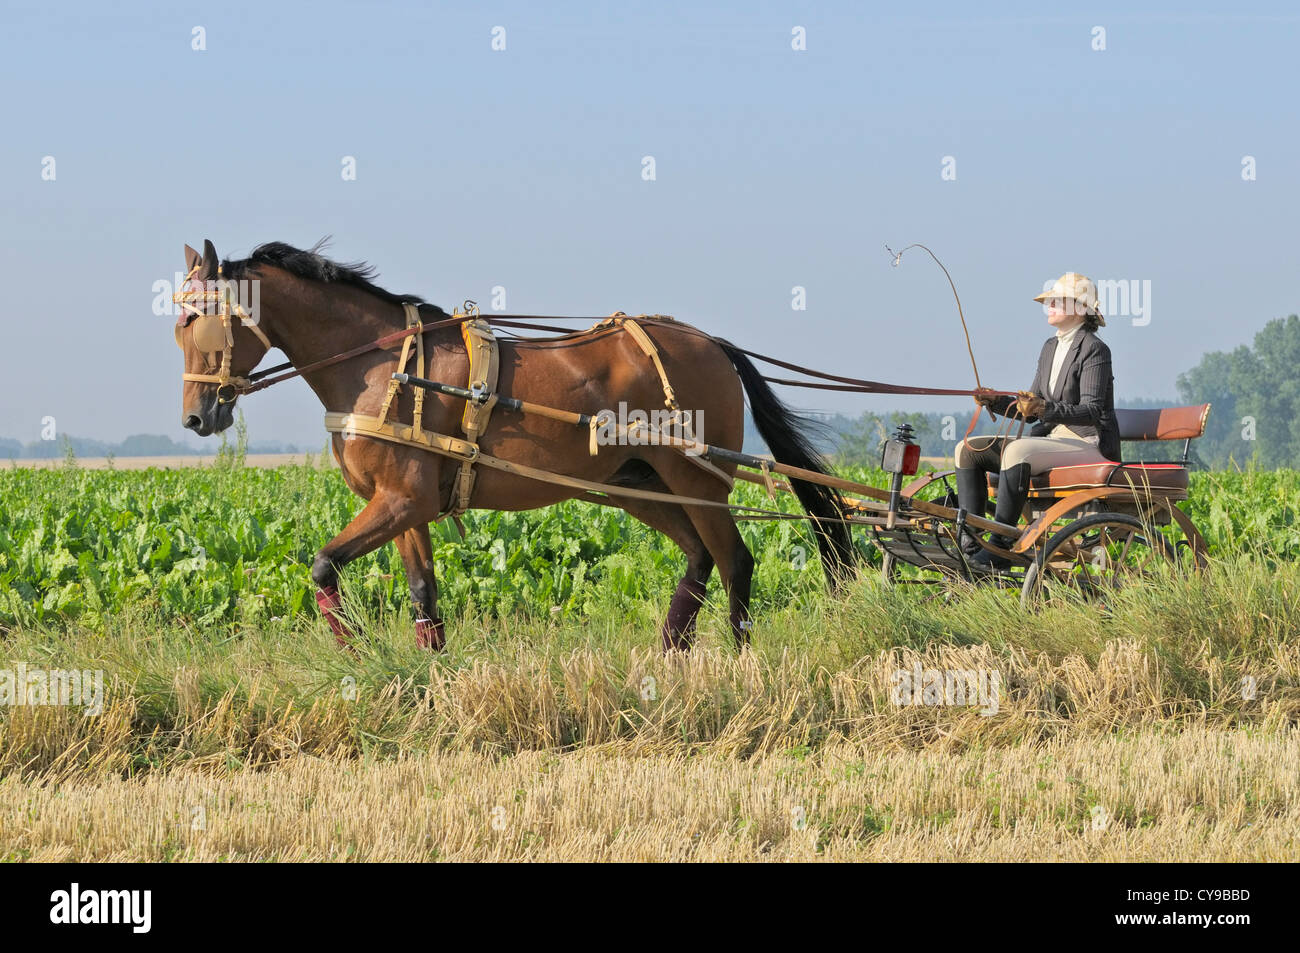 American Standard Bred horse drawing a gig made 1920 in Mailand - Stock Image